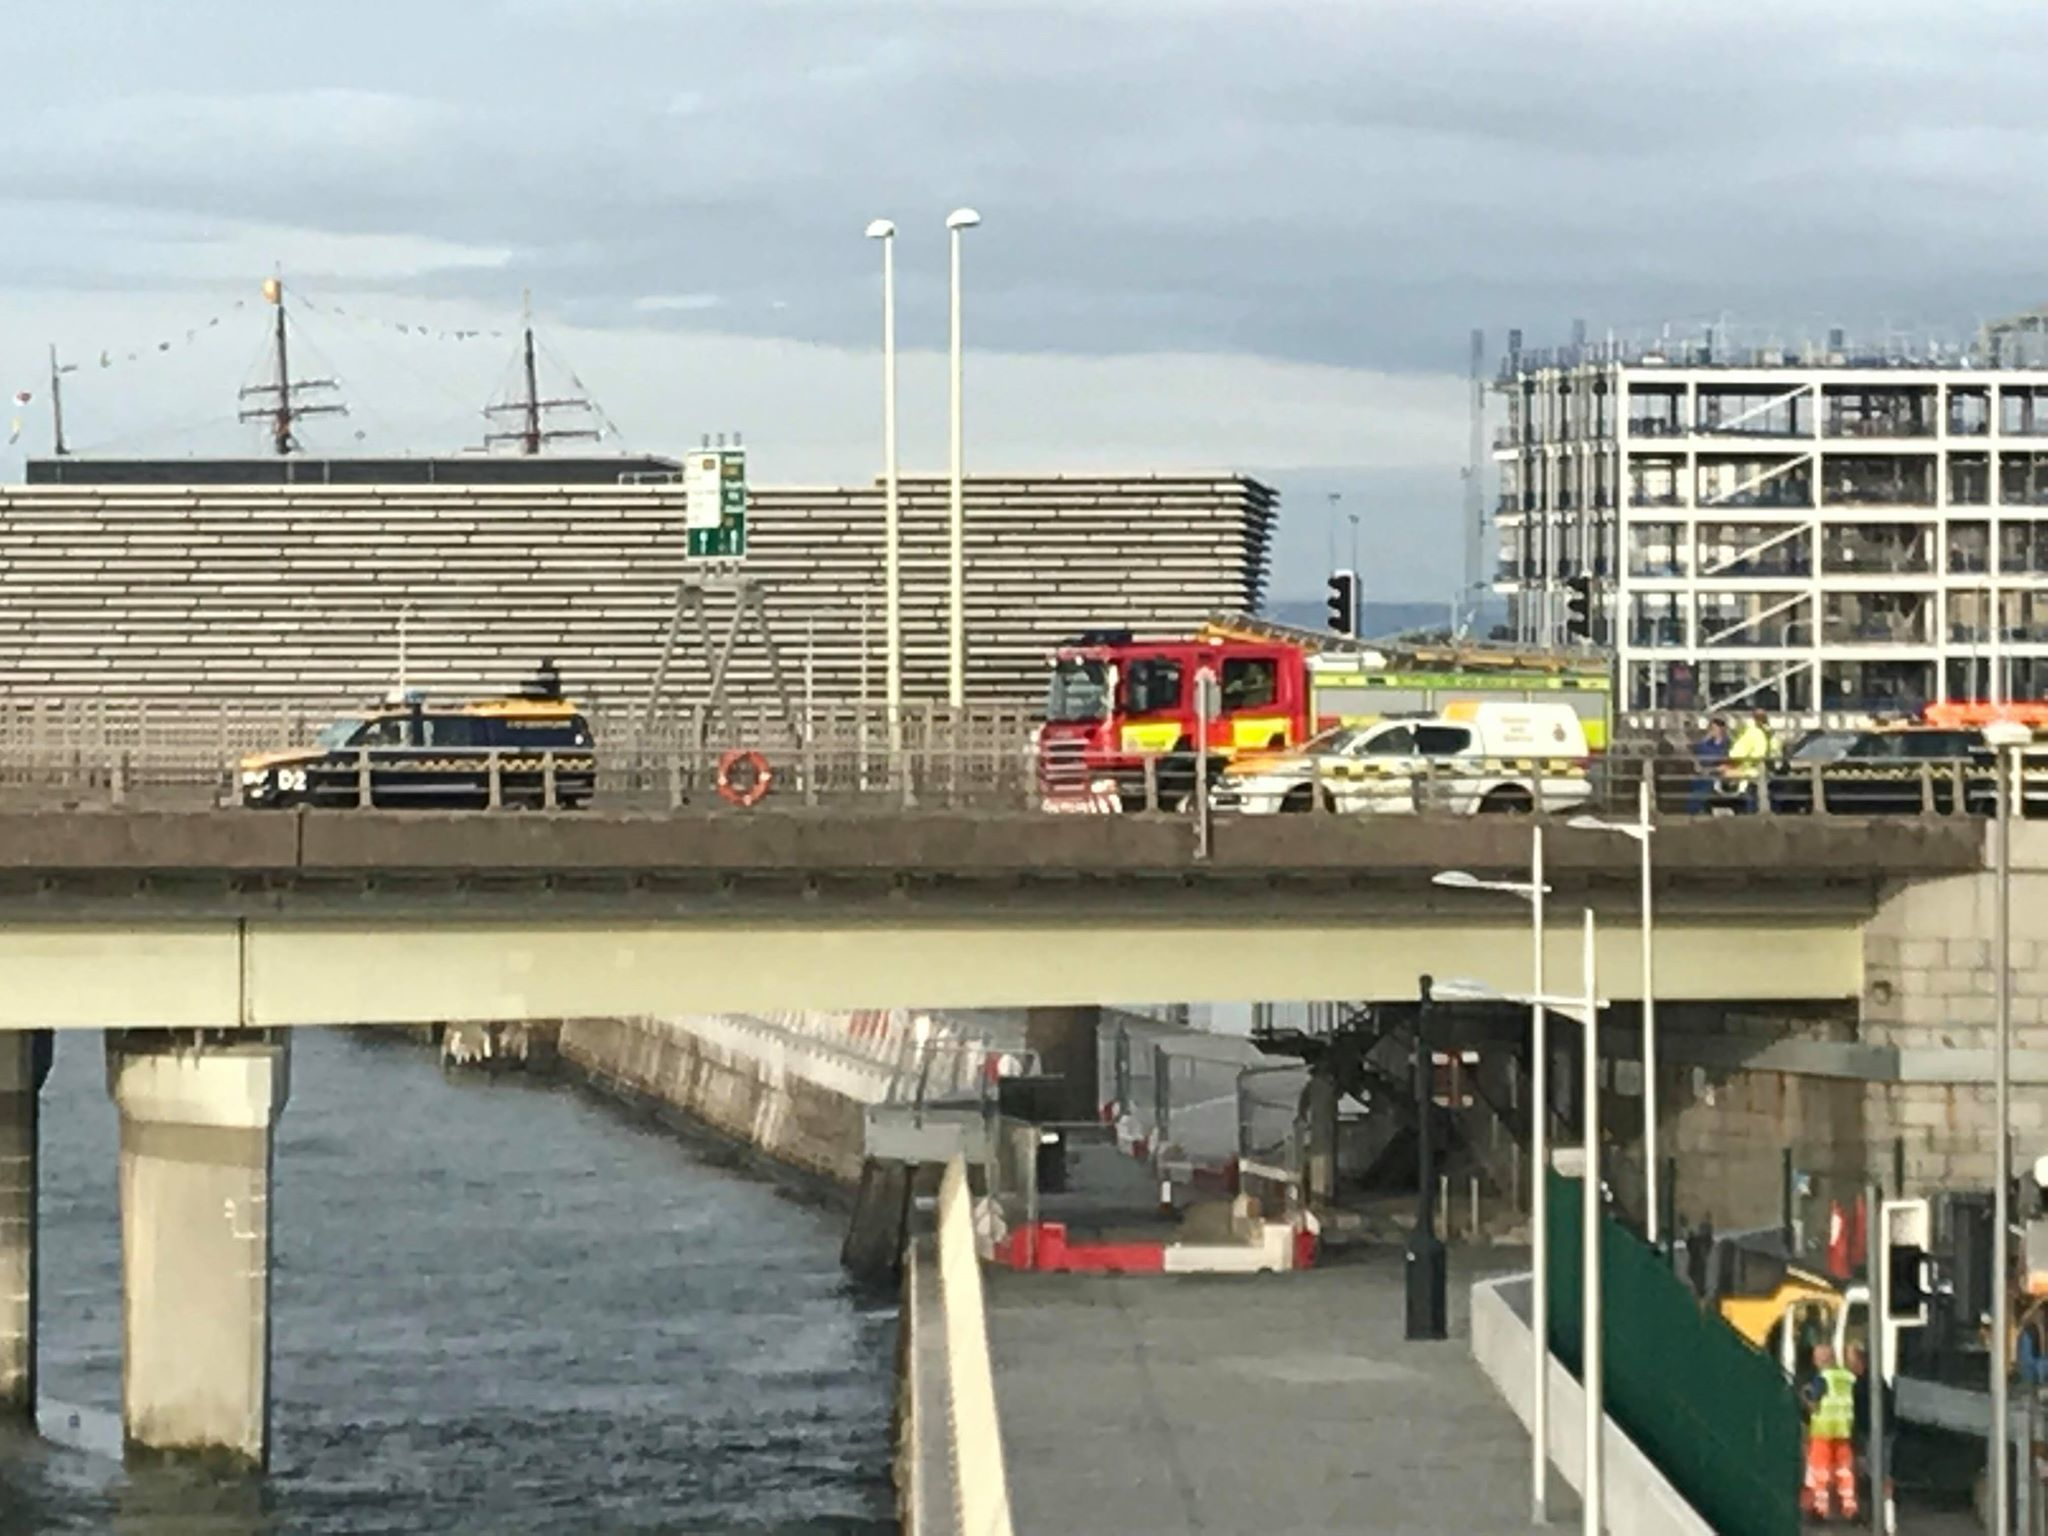 Emergency services on the Tay Road Bridge